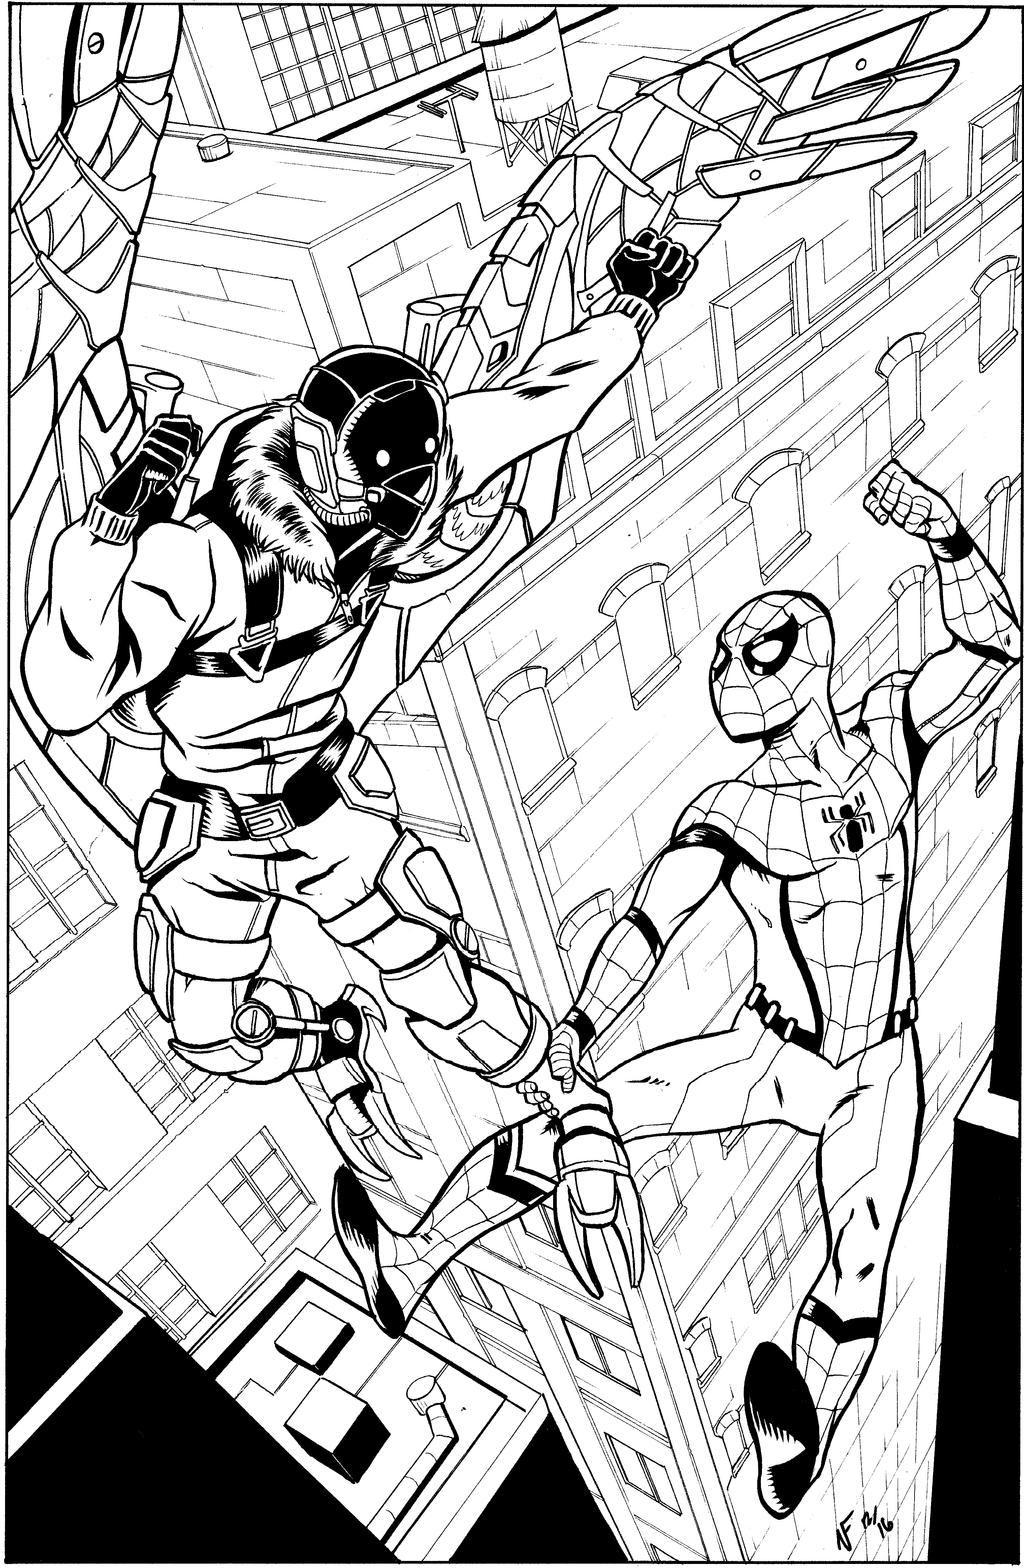 Spider-man Homecoming inks by CrimeRoyale on DeviantArt